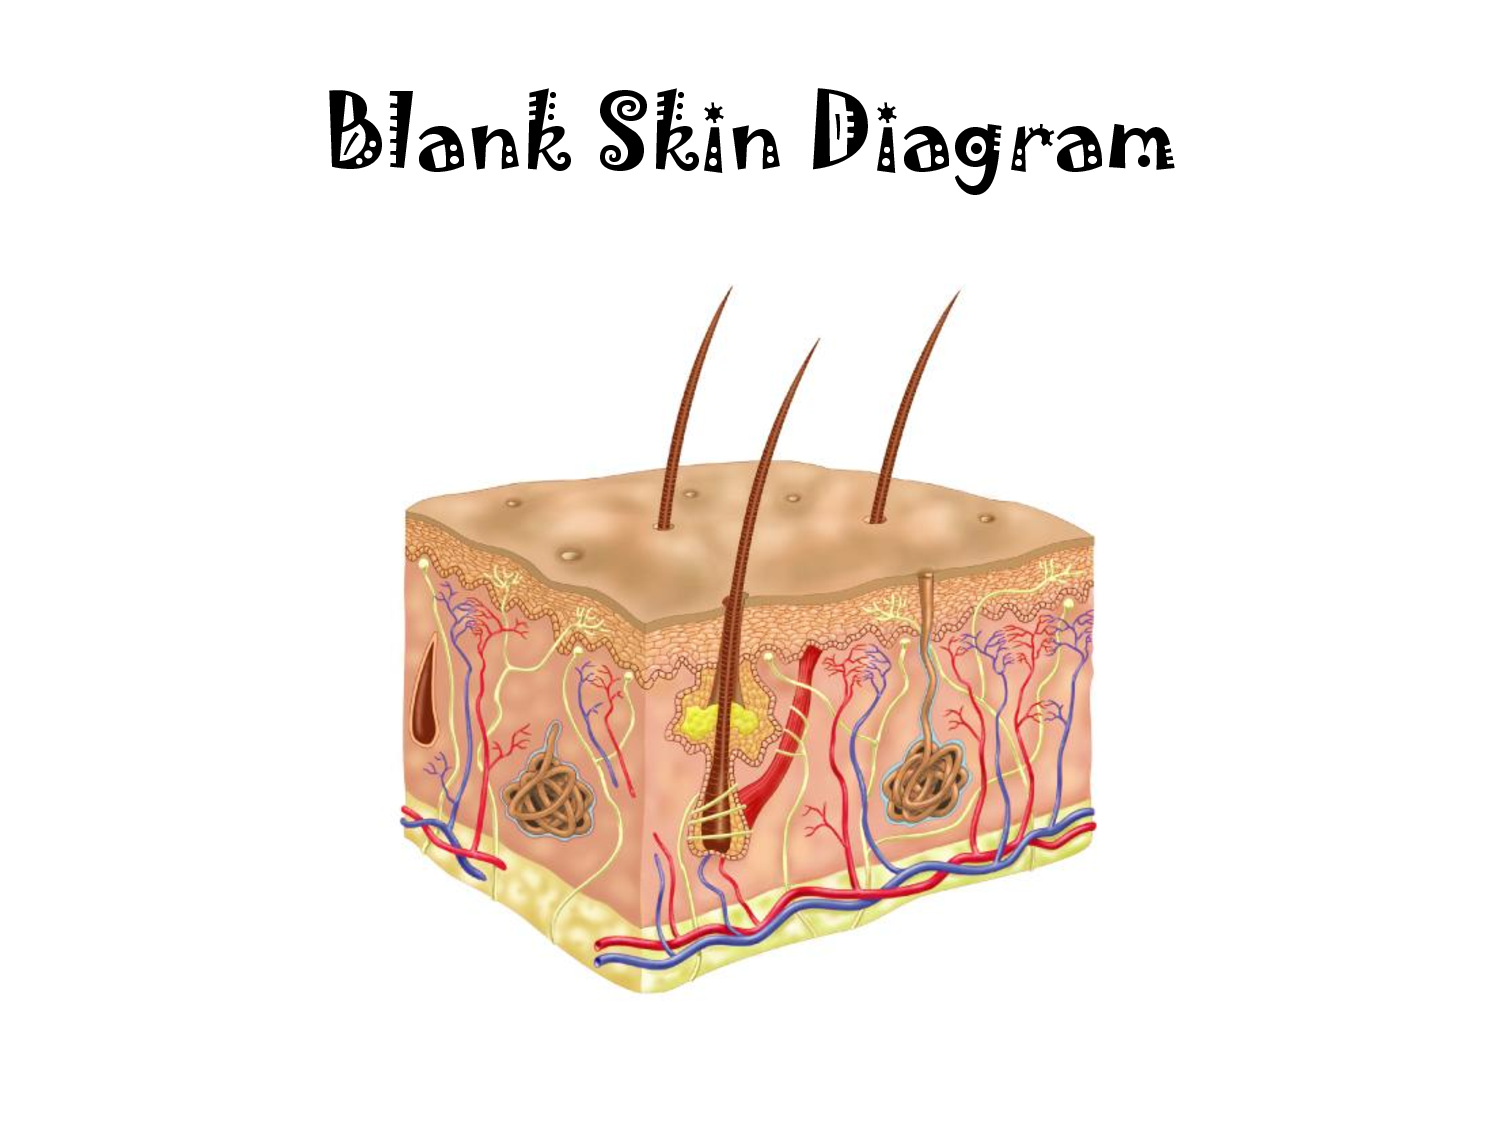 skin cell diagram unlabeled - simple wiring diagram